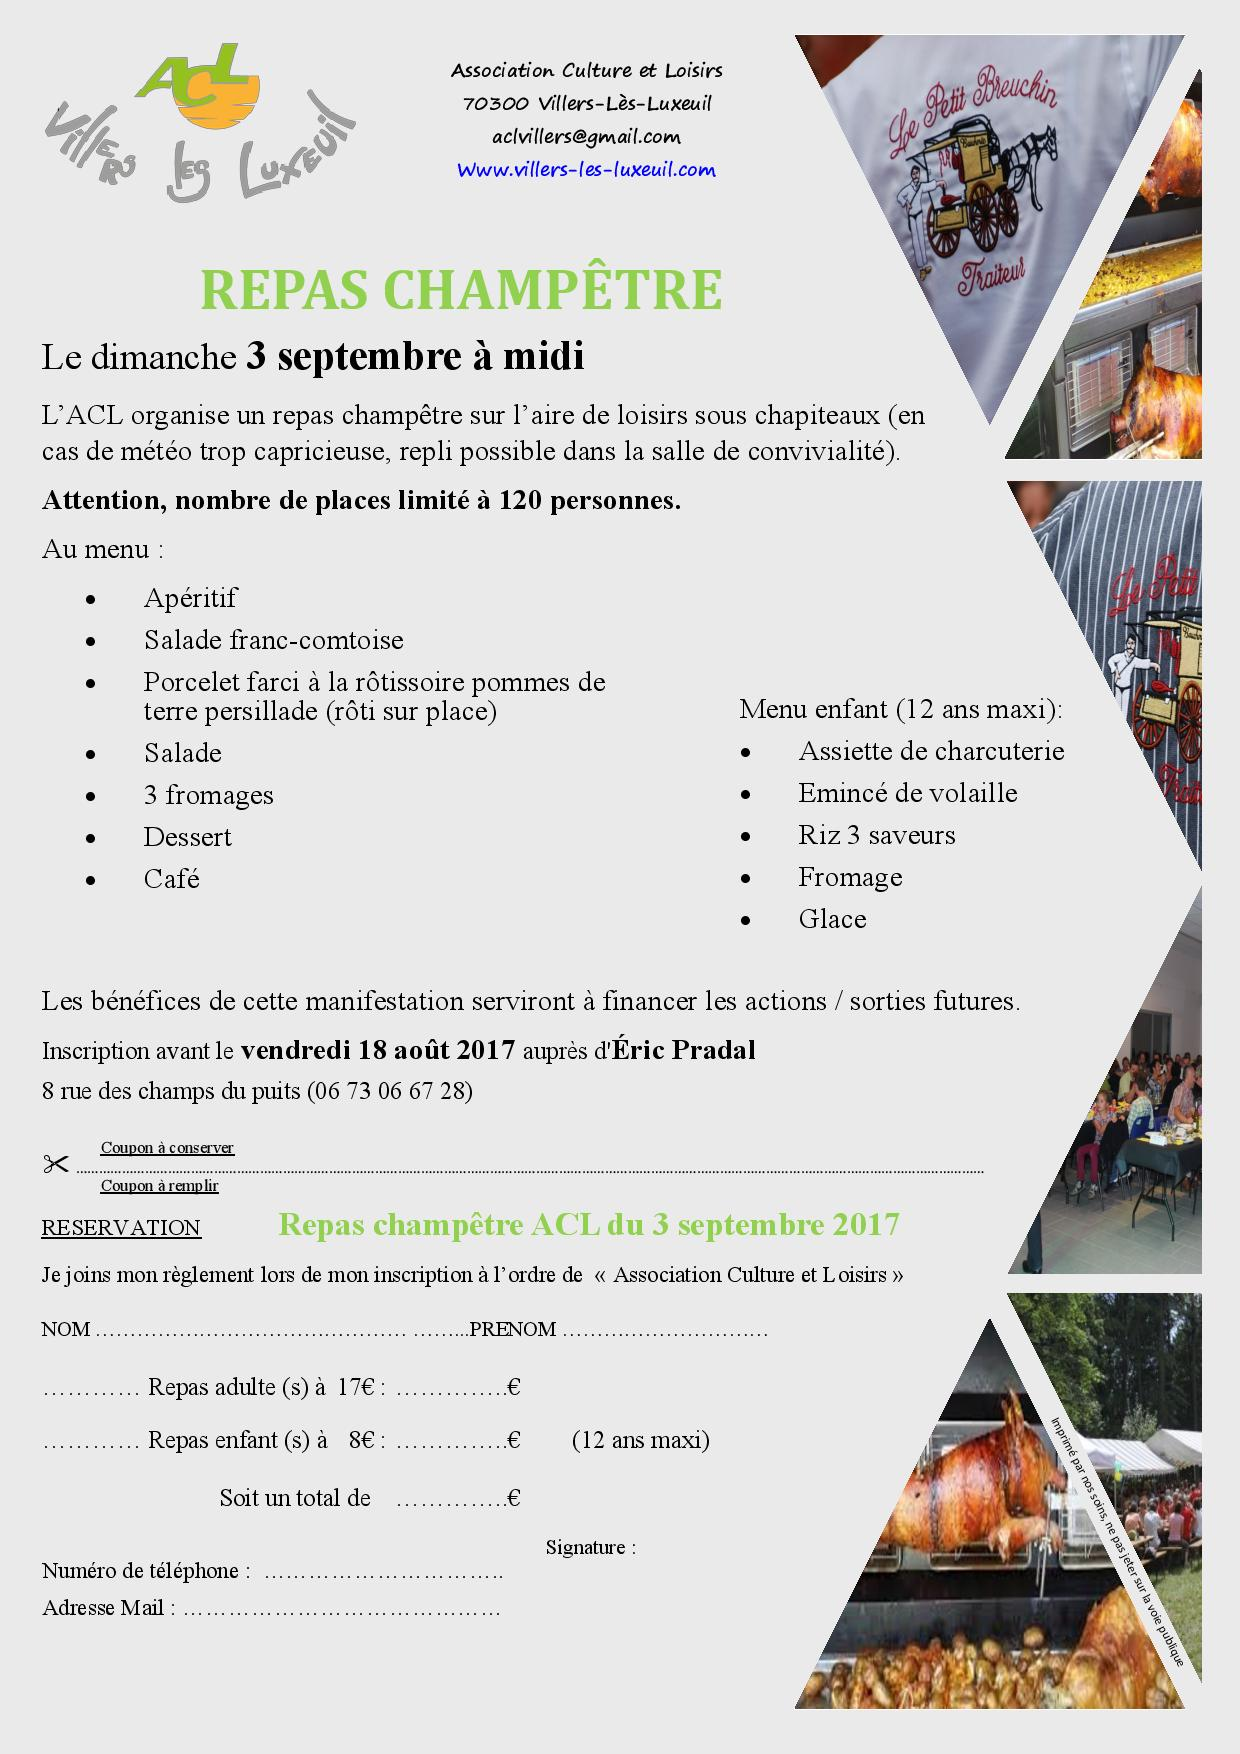 https://www.villers-les-luxeuil.com/projets/villers/files/images/2017_Evenements/TRACTS/Tract_repas_champetre_09_2017_version_du_02_juillet_page_001.jpg